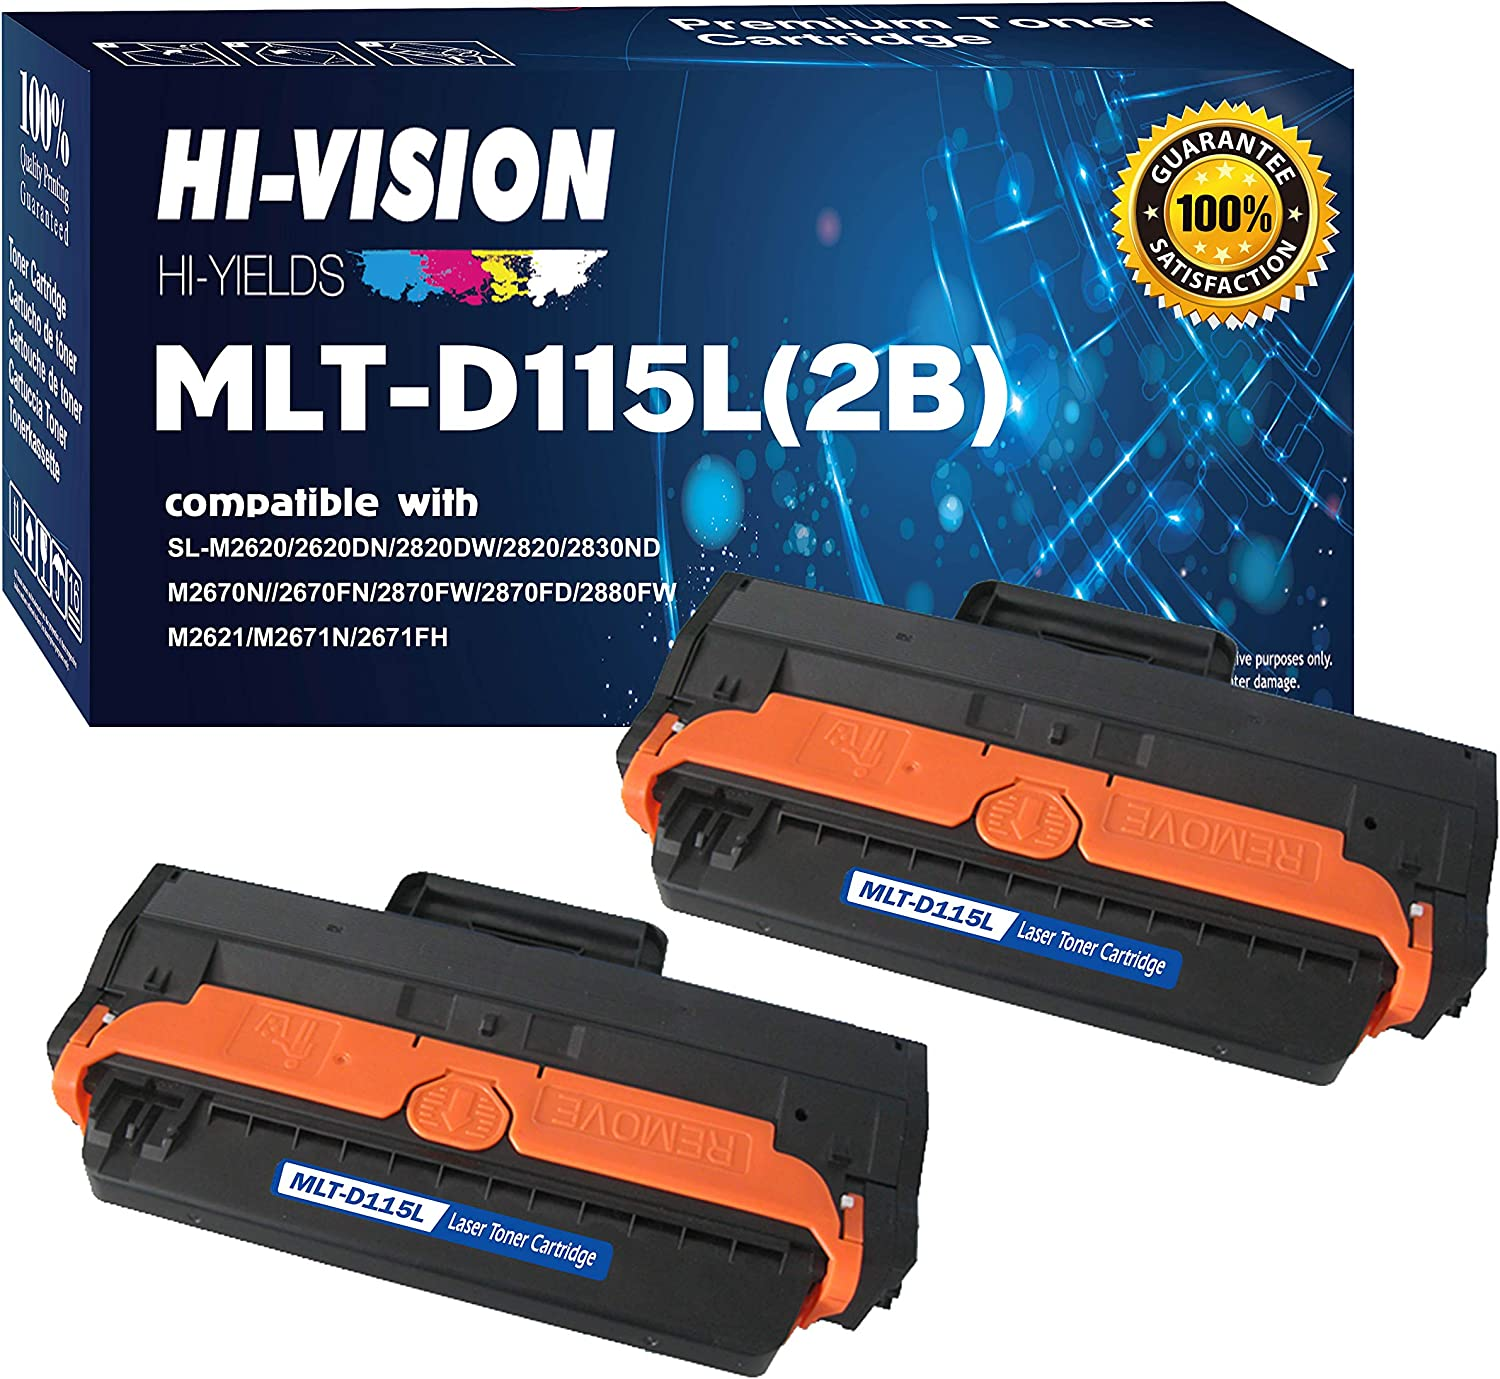 GREENCYCLE 3000 Pages per High Yield Toner Cartridge Replacement Compatible for Samsung MLT-D115L MLTD115L Used in Xpress SL-M2880FW M2870 M2870FW M2830DW M2820DW Black, 10-Pack